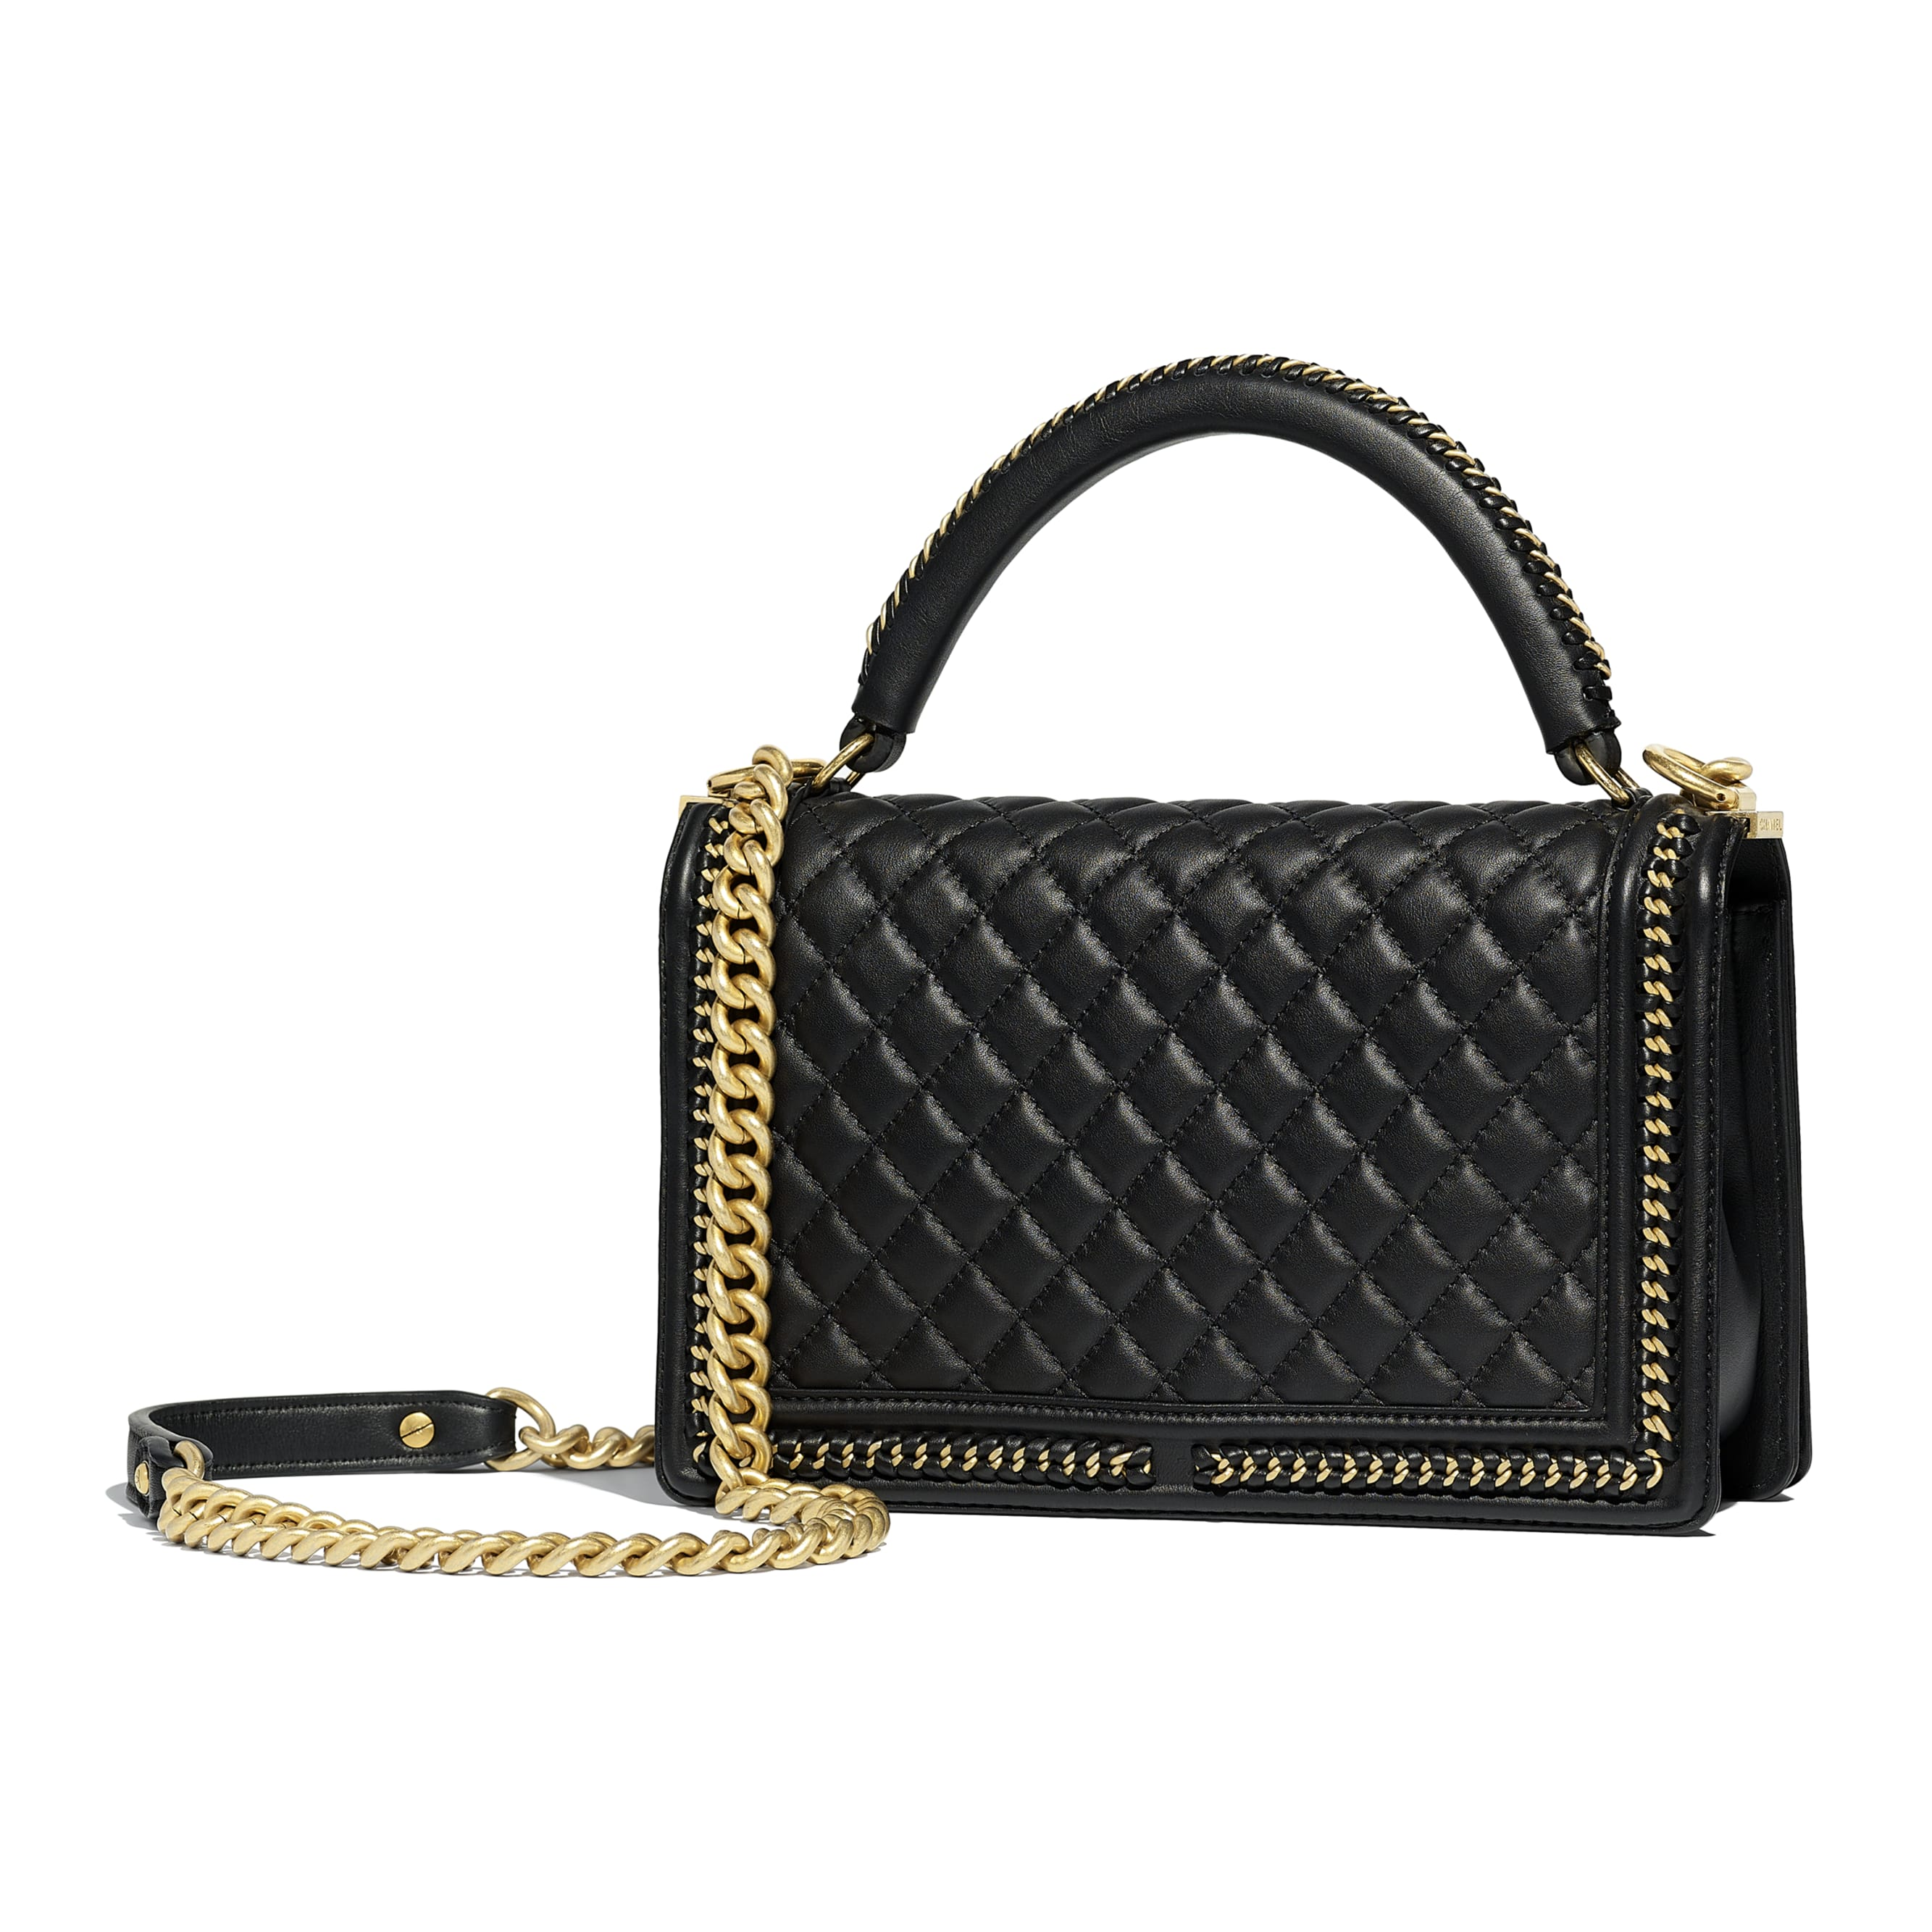 Boy Chanel Flap Bag With Handle Black Calfskin Gold Tone Metal